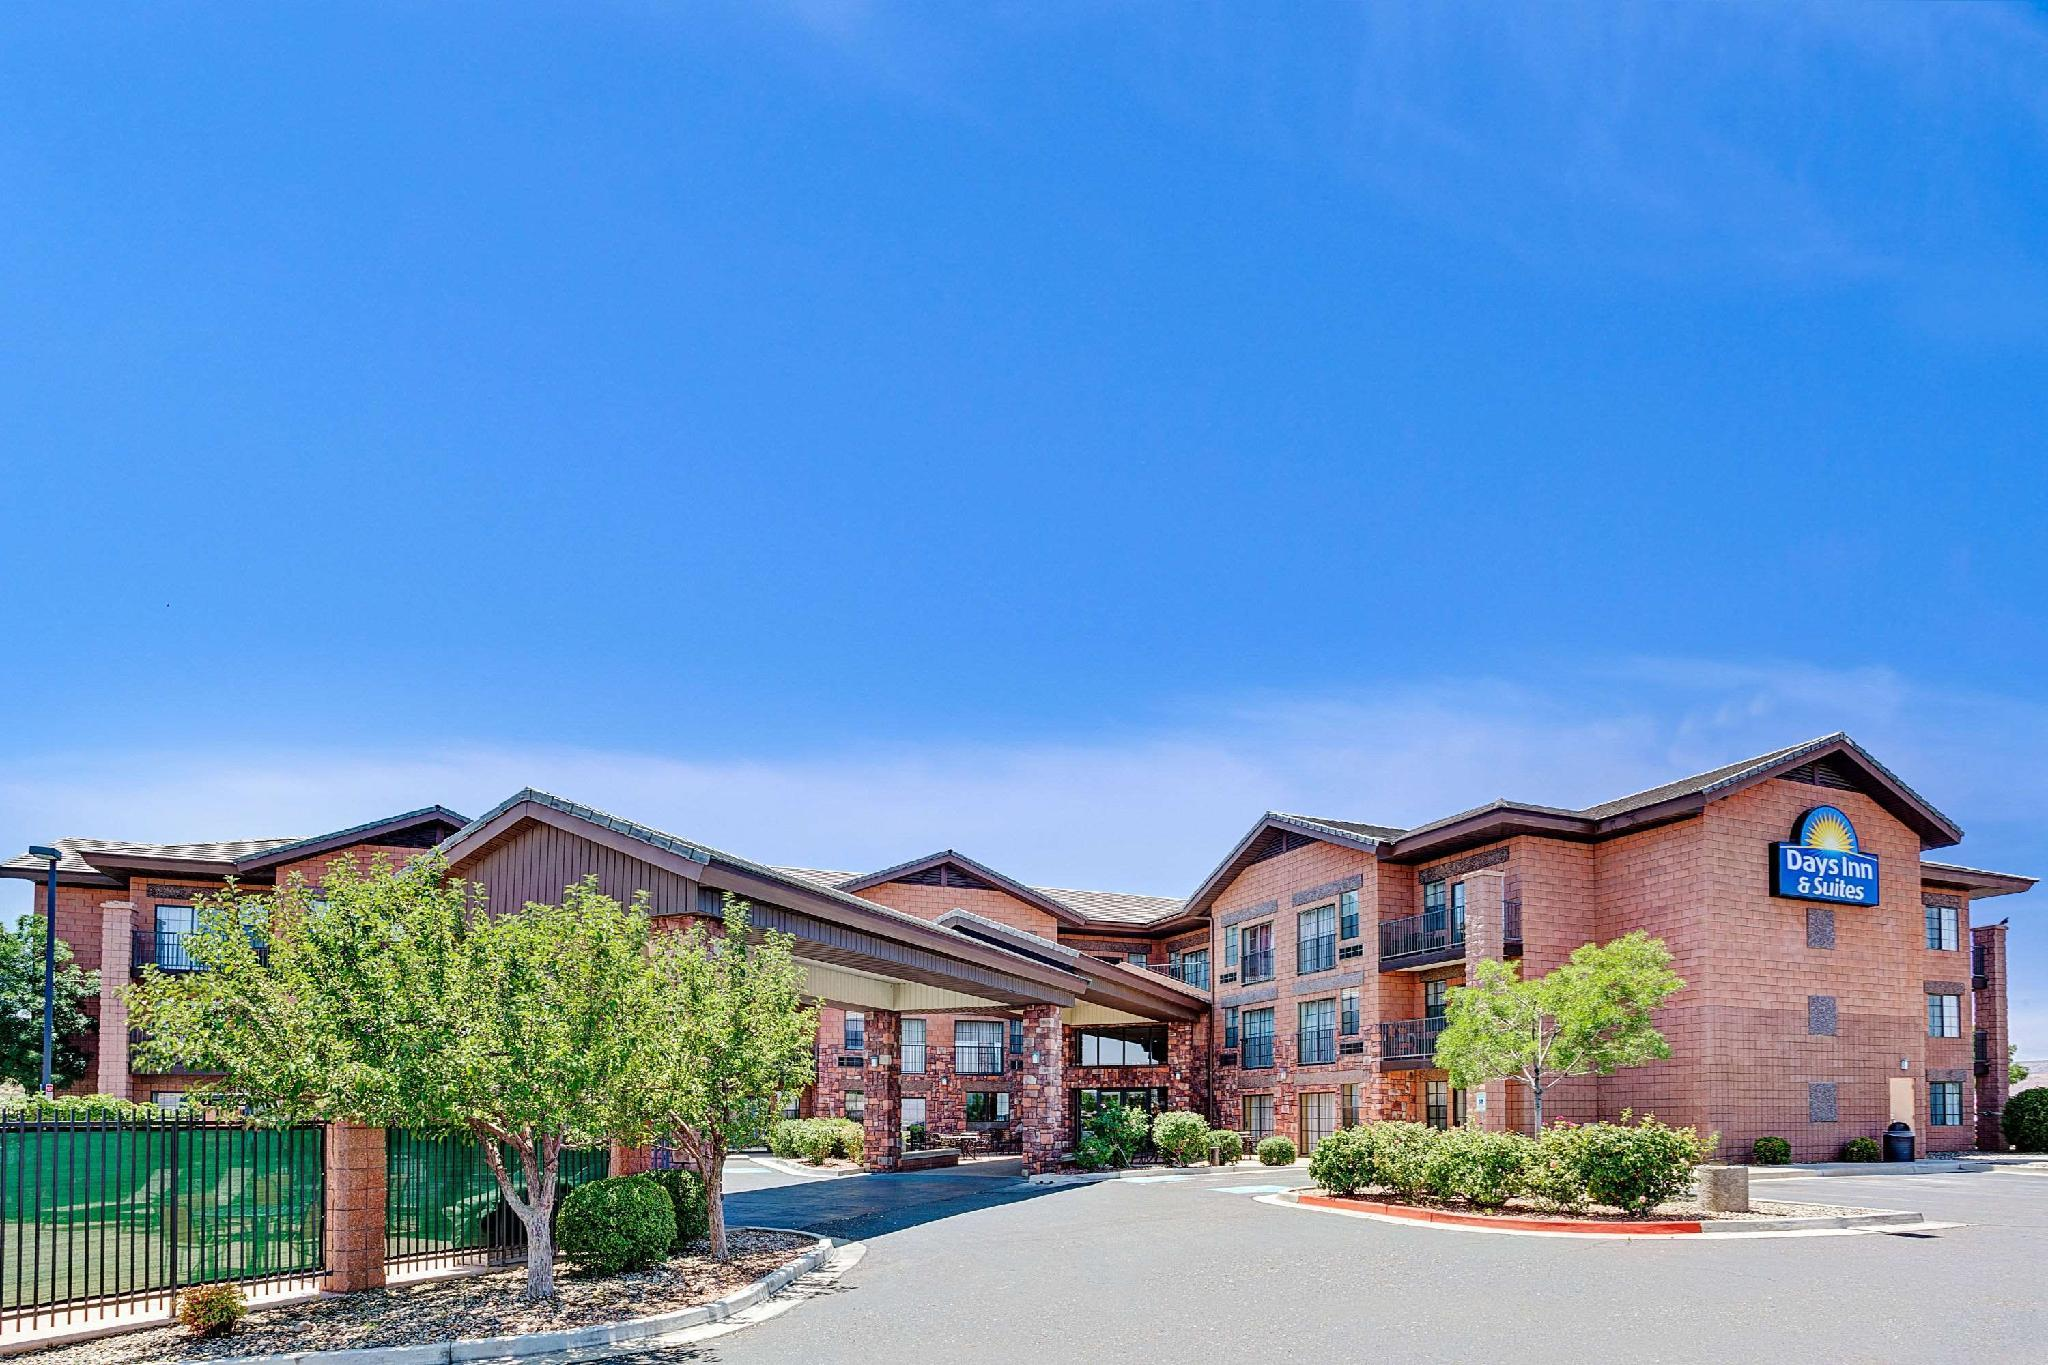 Days Inn And Suites By Wyndham Page Lake Powell